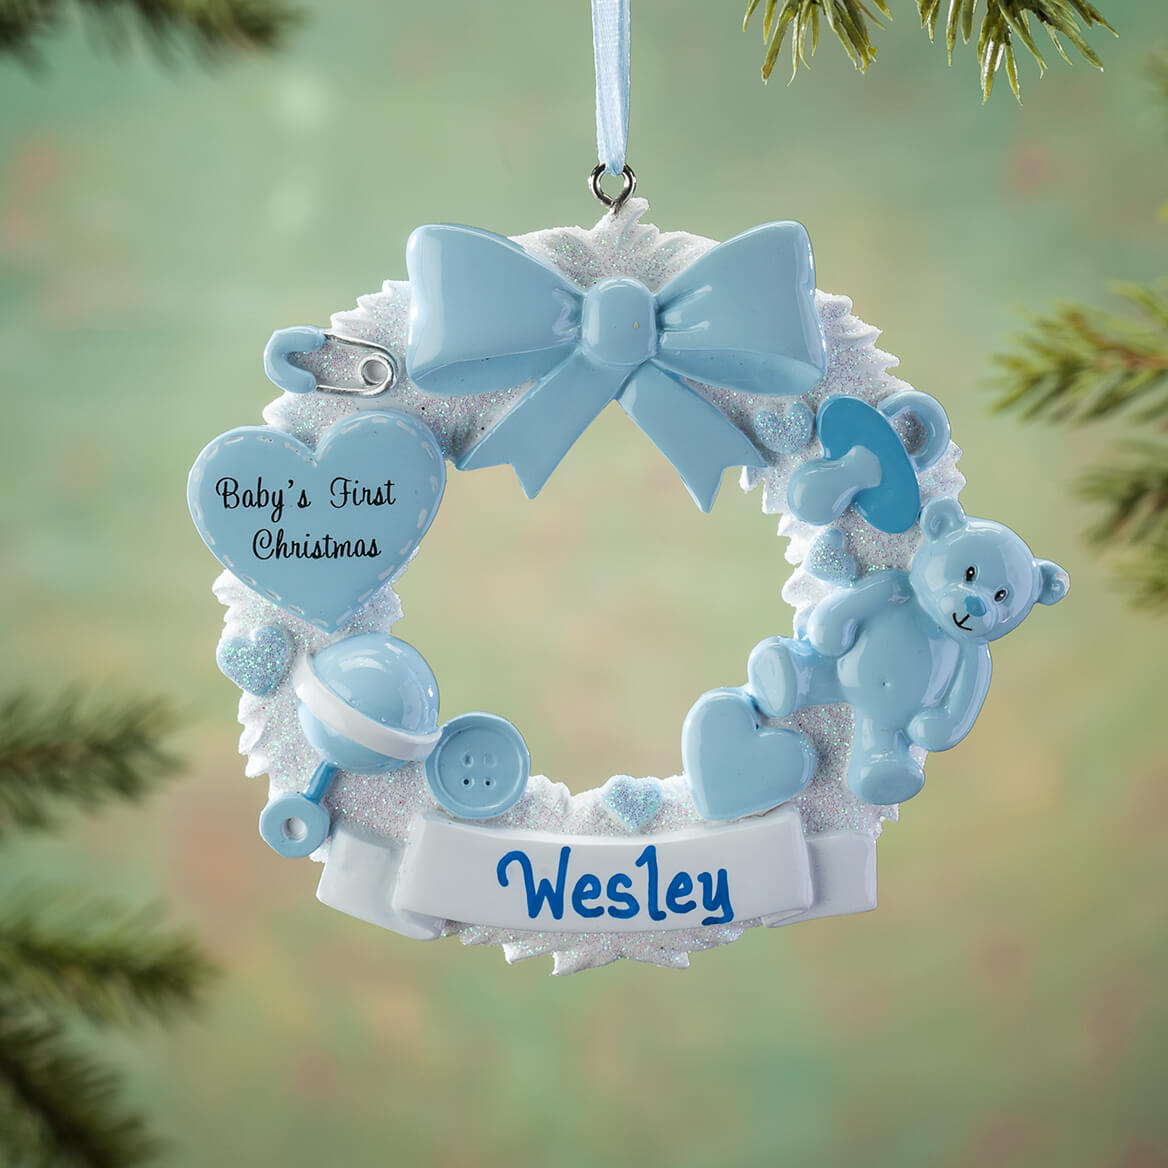 Personalized Babys First Christmas Wreath Ornament Miles Kimball